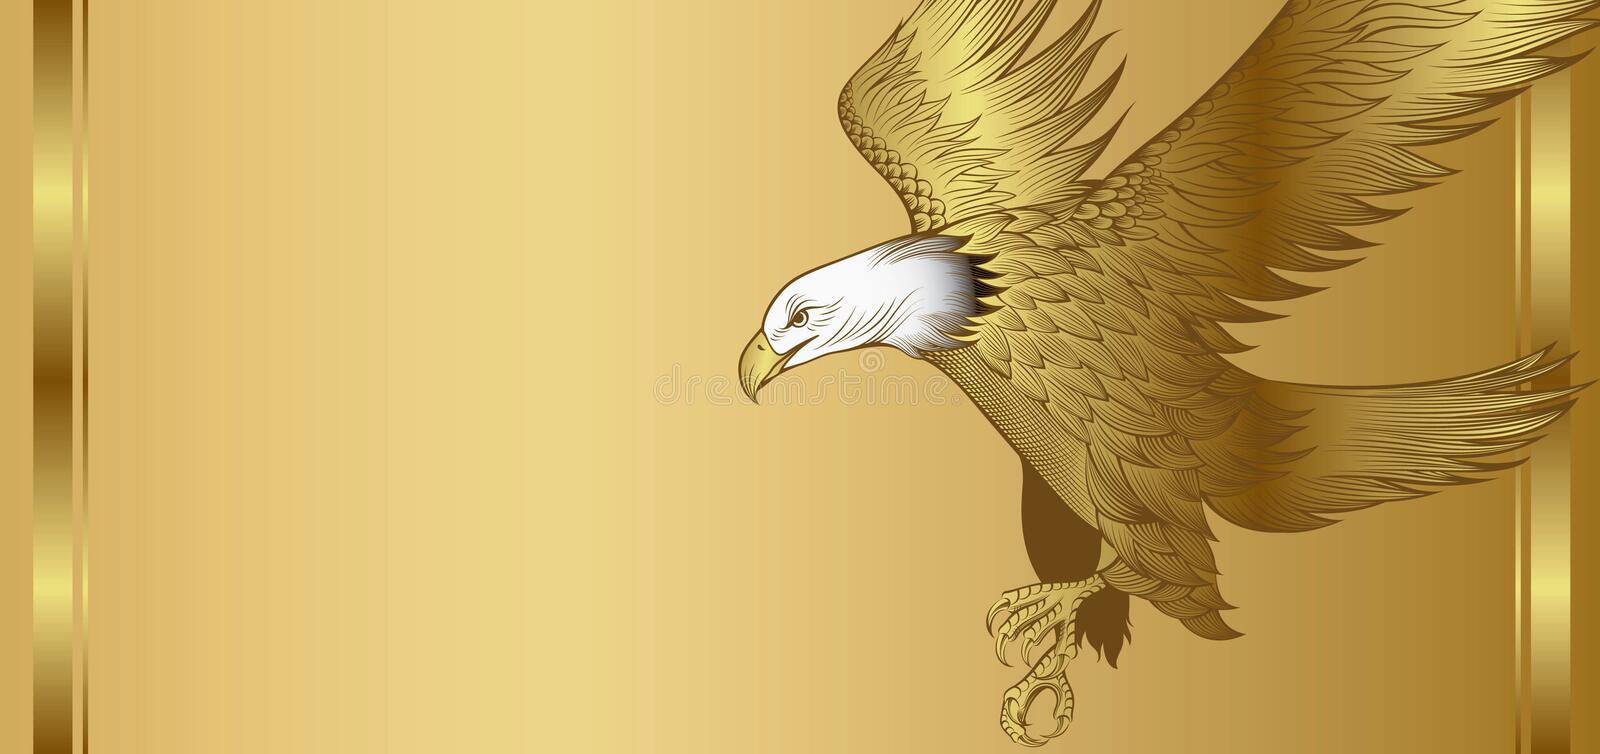 Golden Eagle Background Royalty Free Stock Images